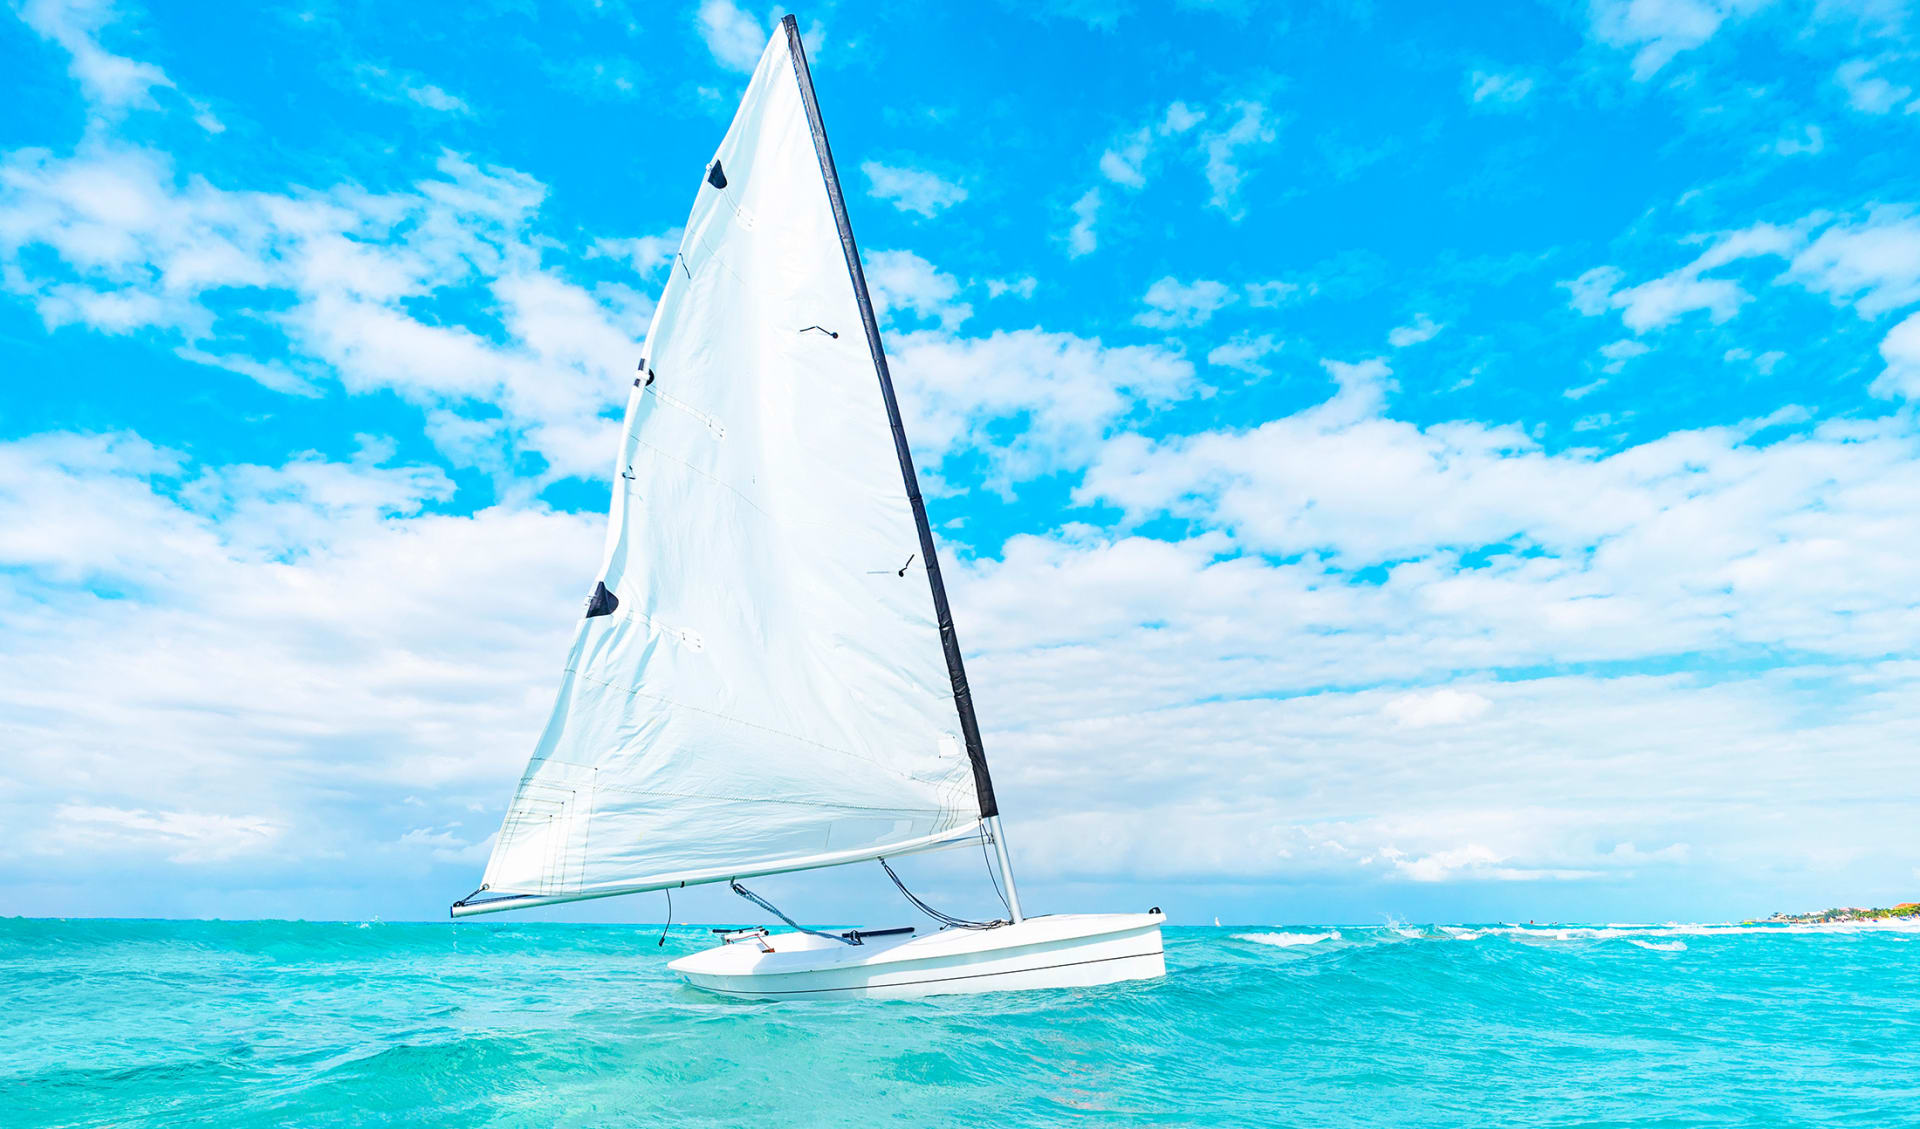 view of catamaran sailing in ocean open water. A catamaran with a white sail drifts through the turquoise waters of the Caribbean sea without people. Beautiful scenery.